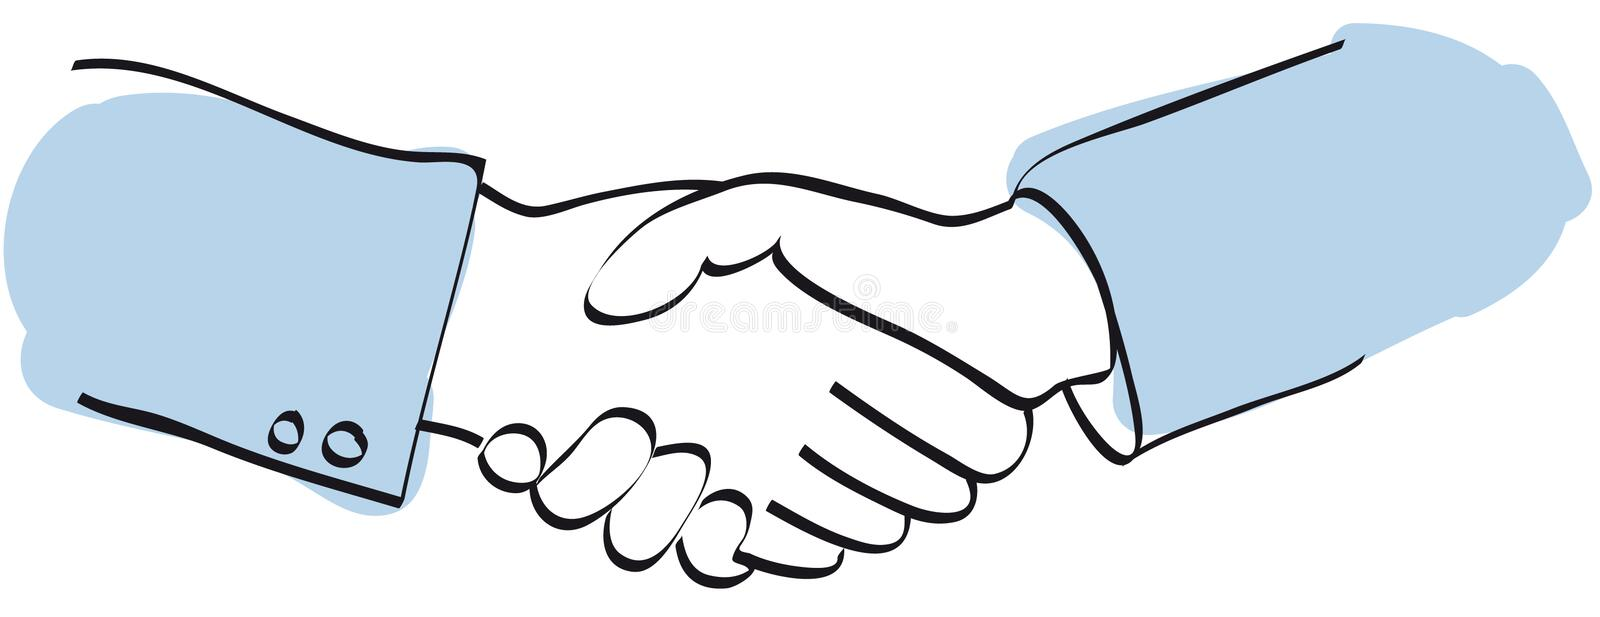 Handshake vector stock illustration